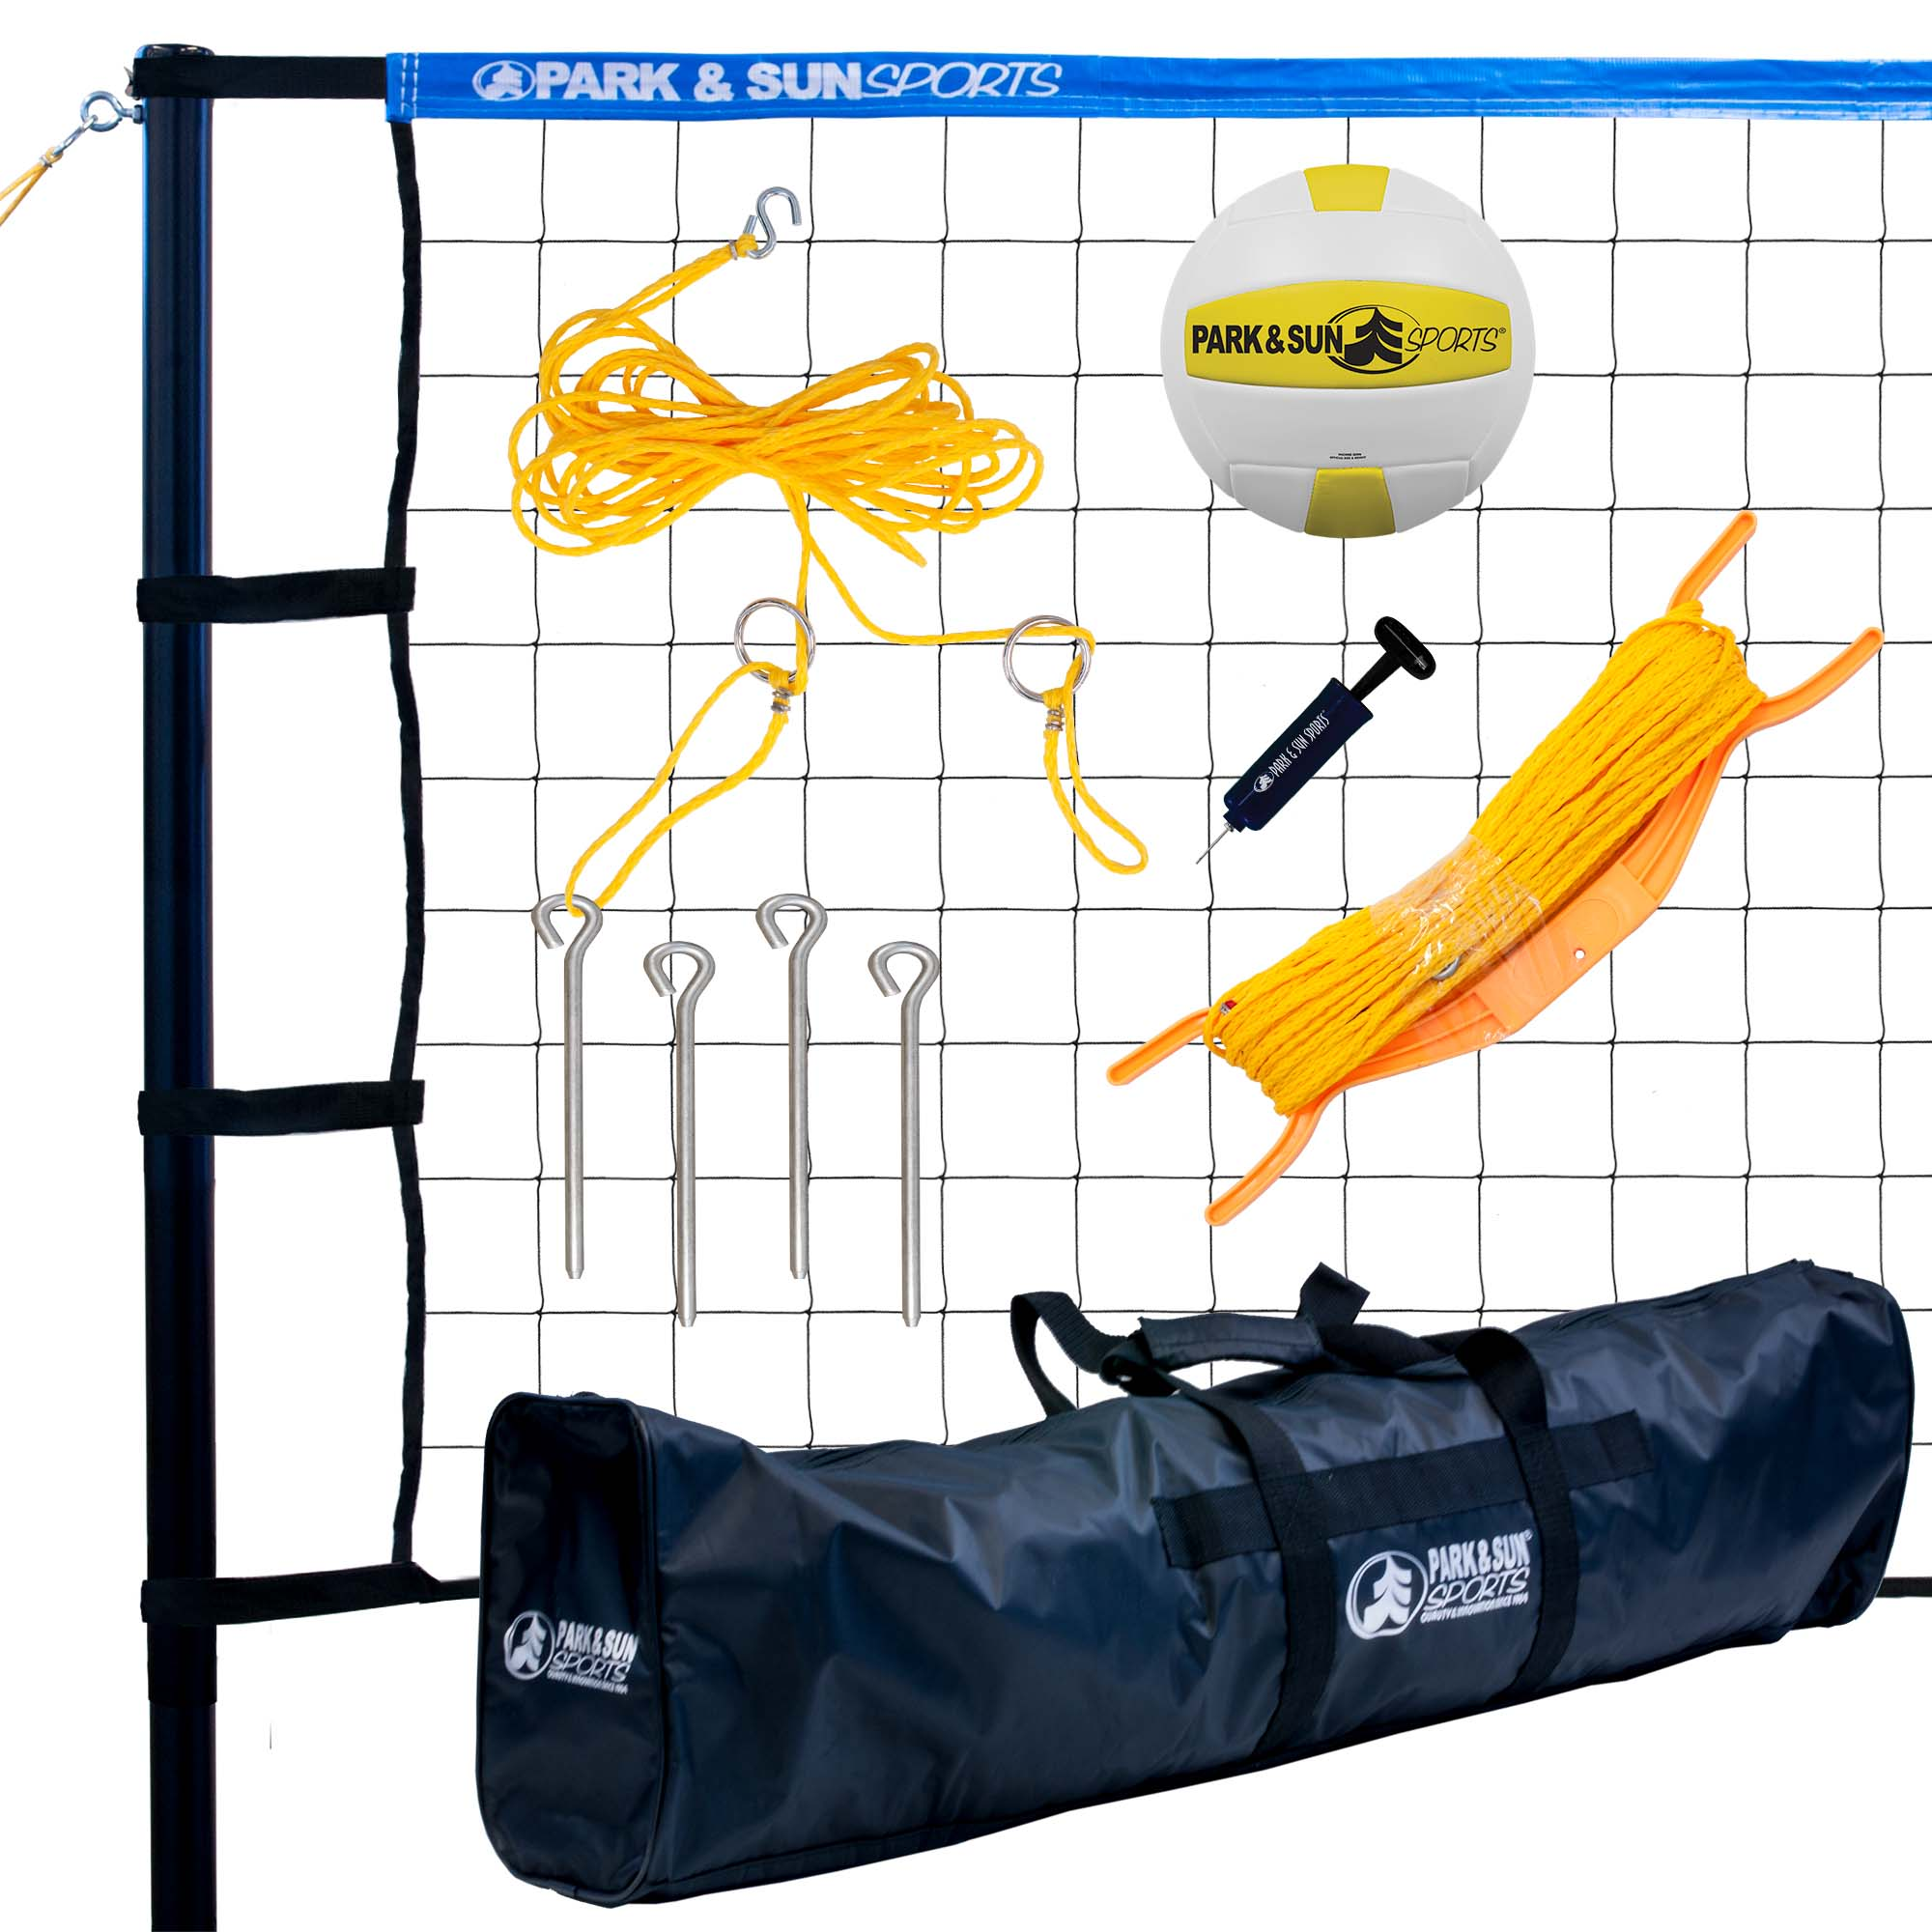 Park & Sun Sports Spectrum 179 Portable Outdoor Tournament Volleyball Net Set